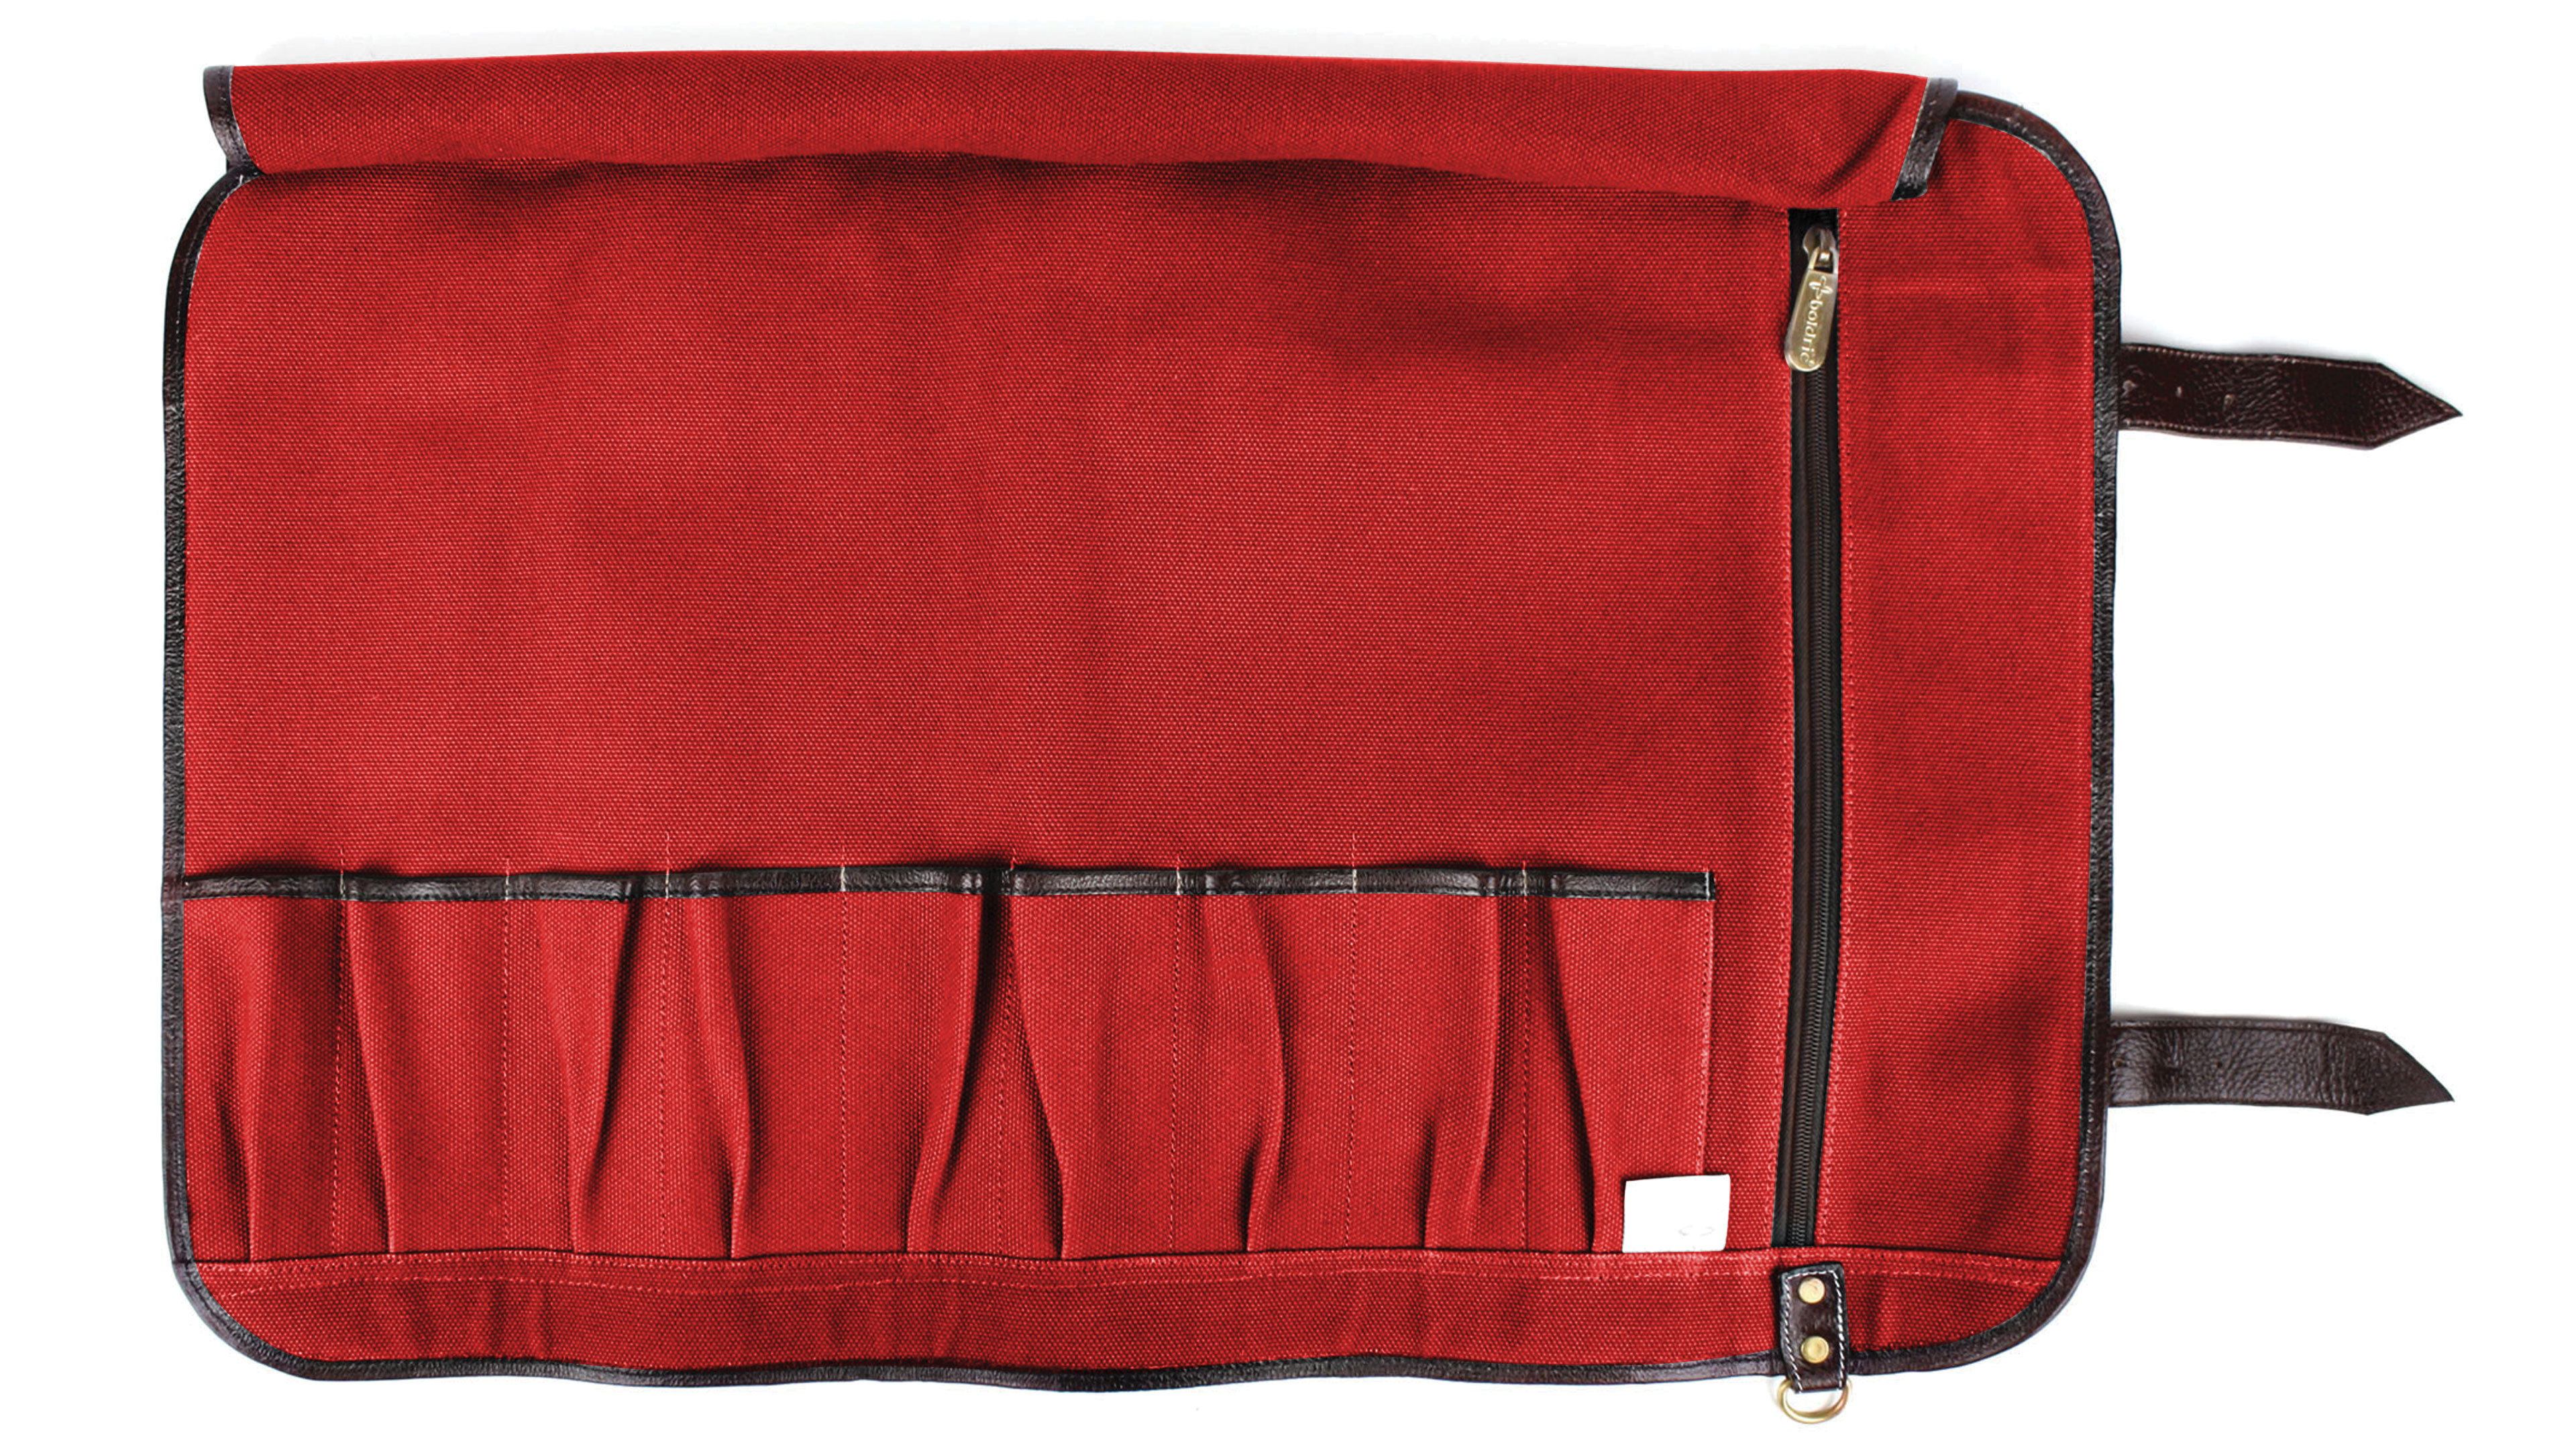 Boldric Canvas Knife Roll 9 Pocket Red Cutlery And More